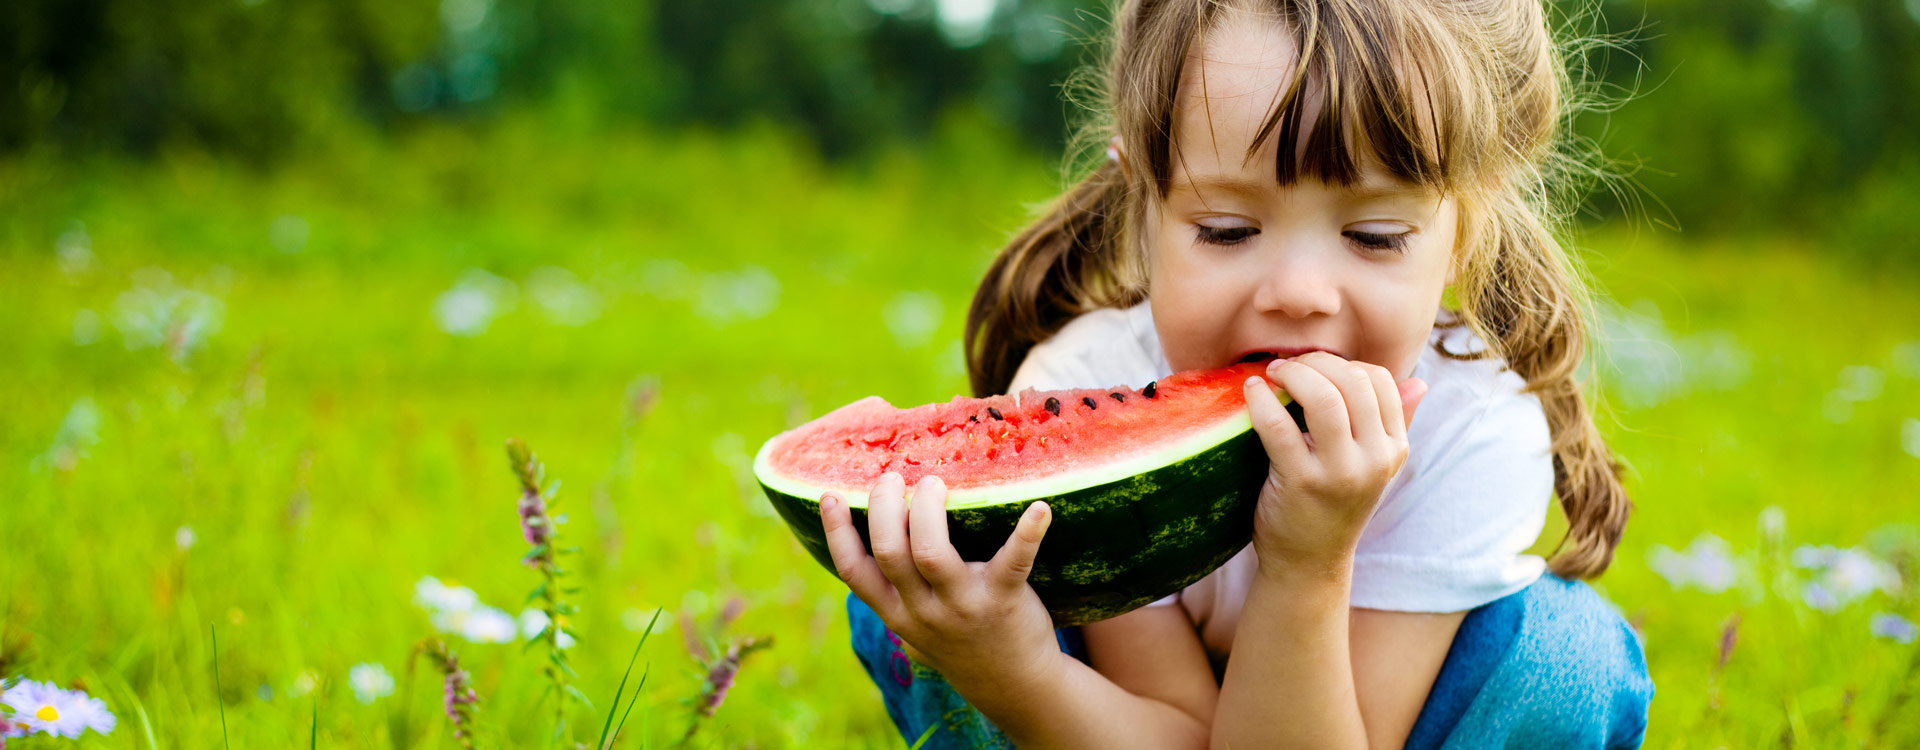 girl eating watermelon snack